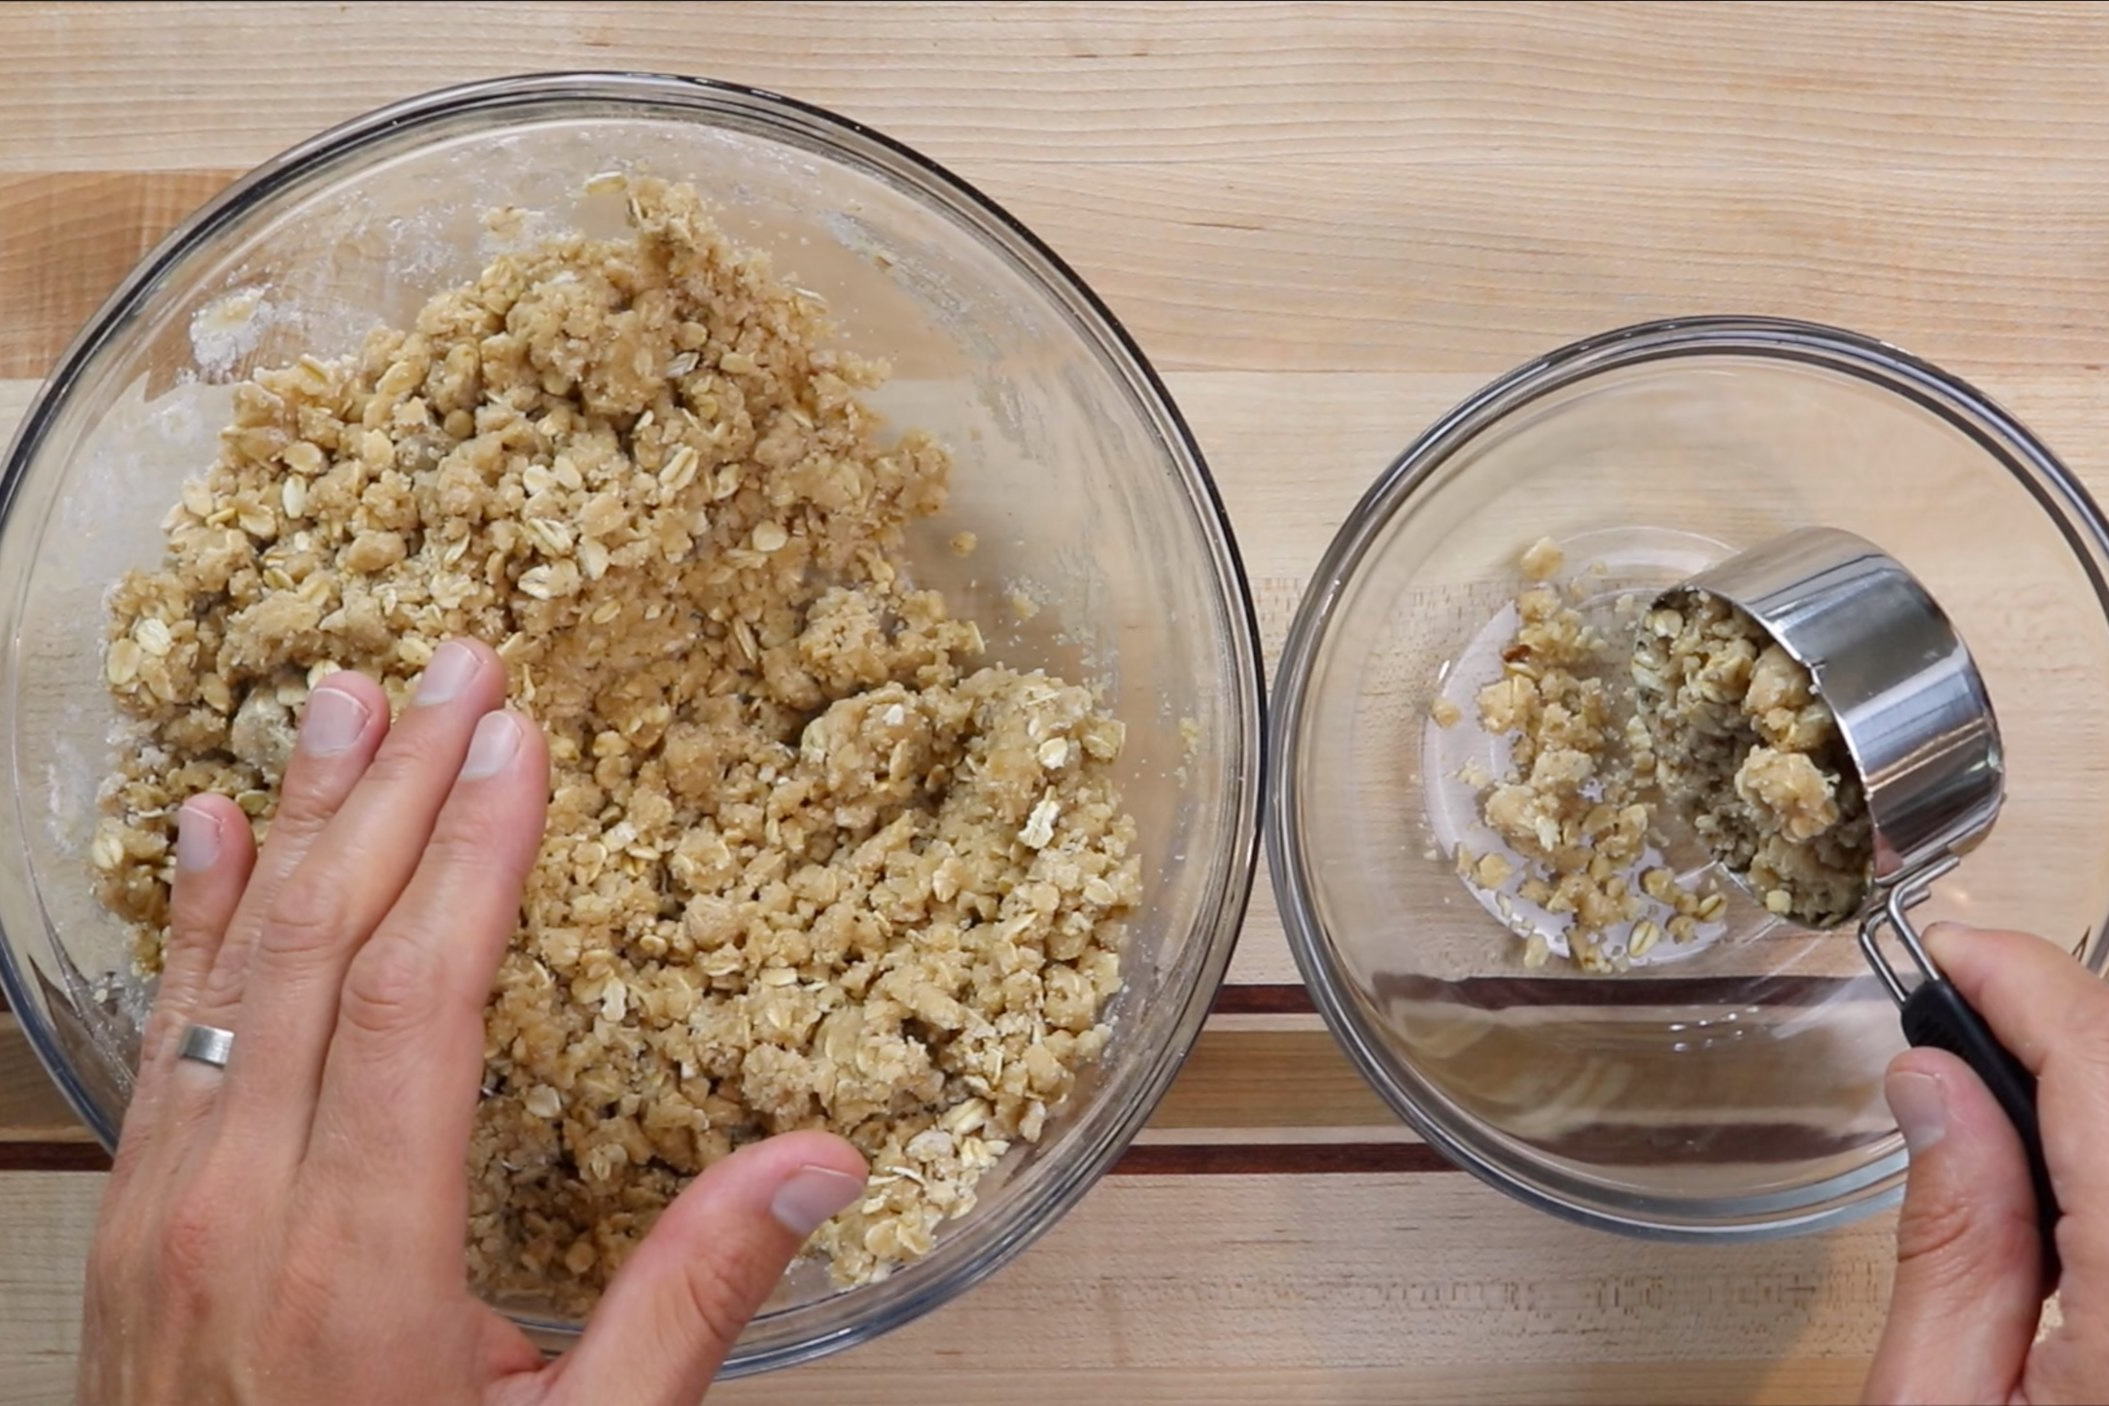 5.Set aside 1 1/2 cups of the crumble mixture for topping. -